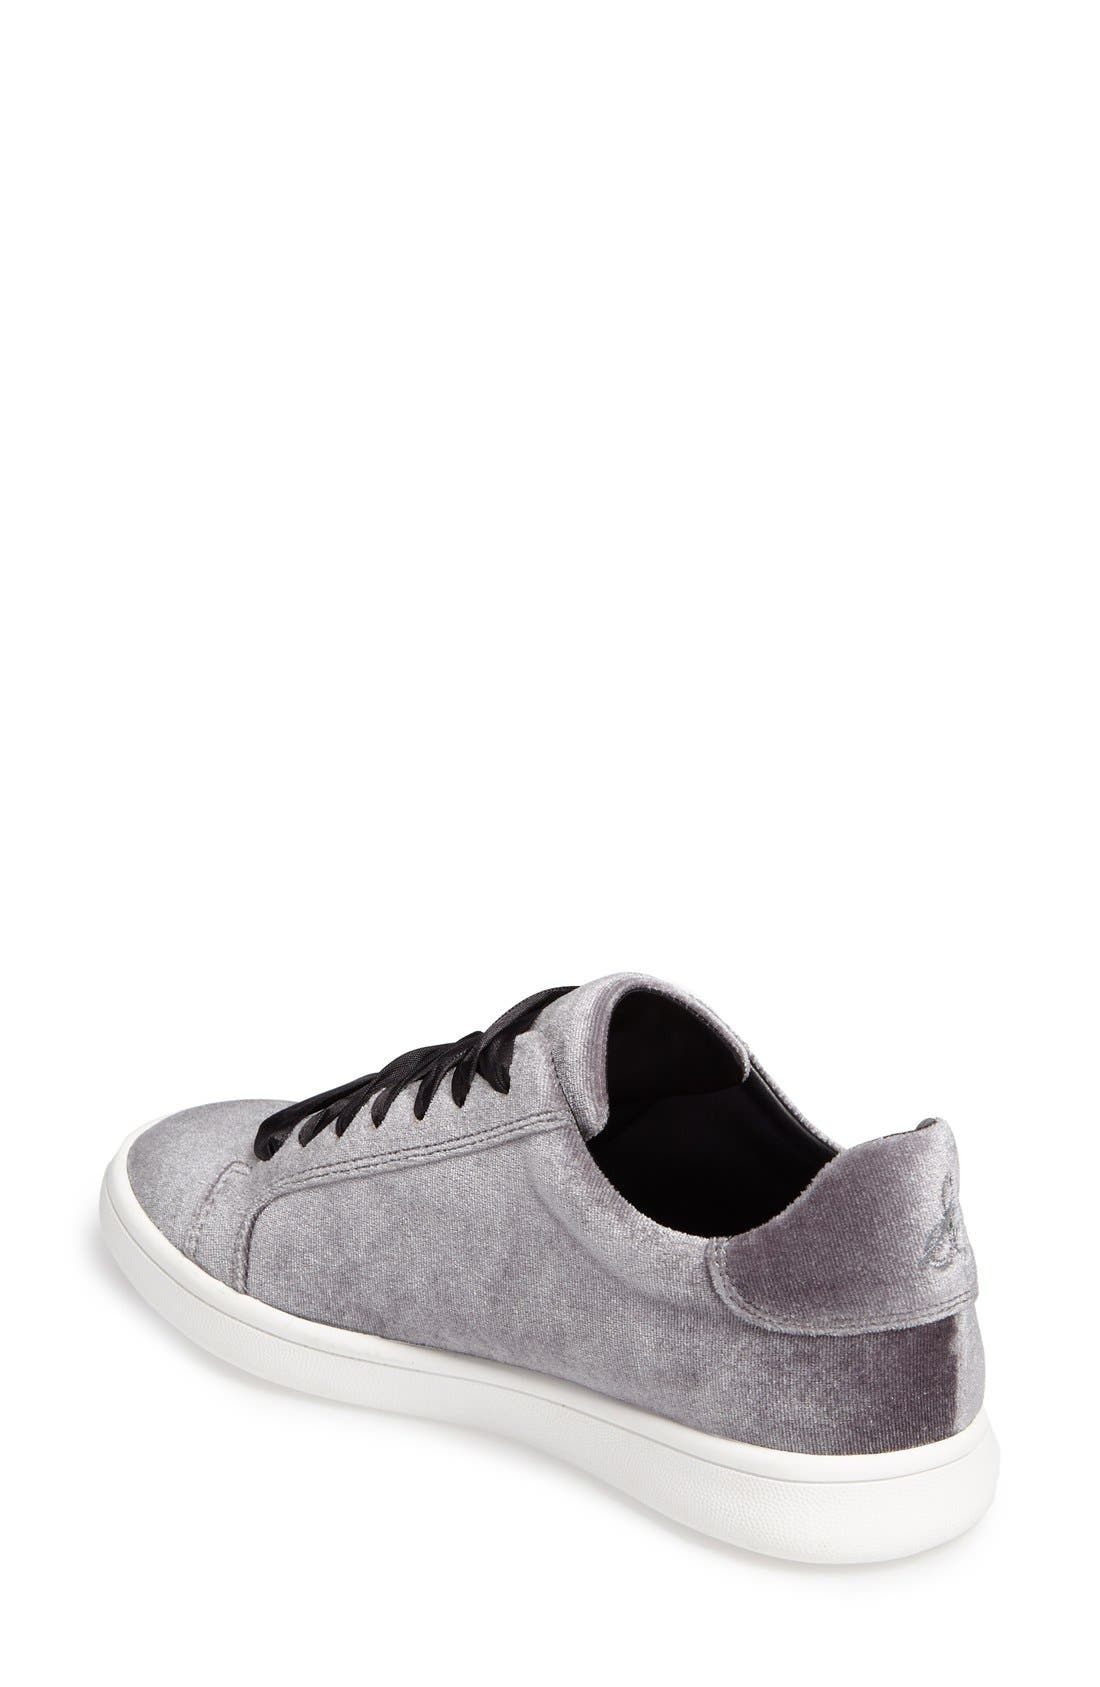 Alternate Image 2  - Sam Edelman Marlow Sneaker (Women)